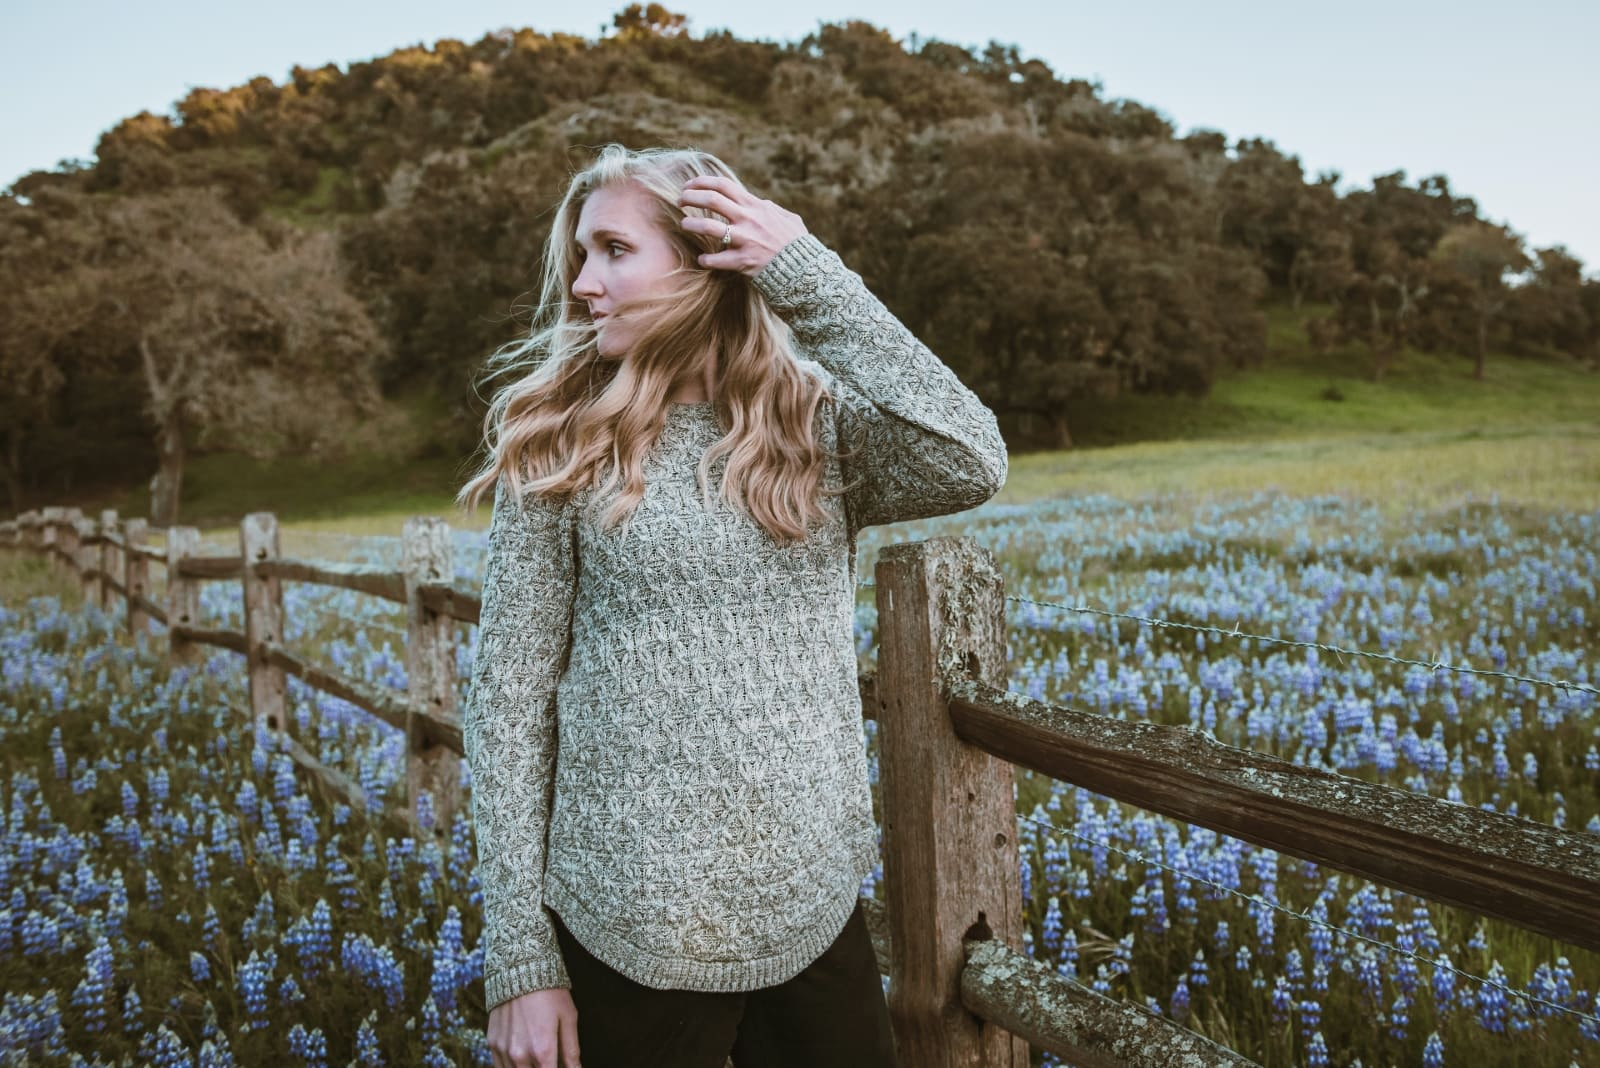 woman in gray sweater standing near wooden fence